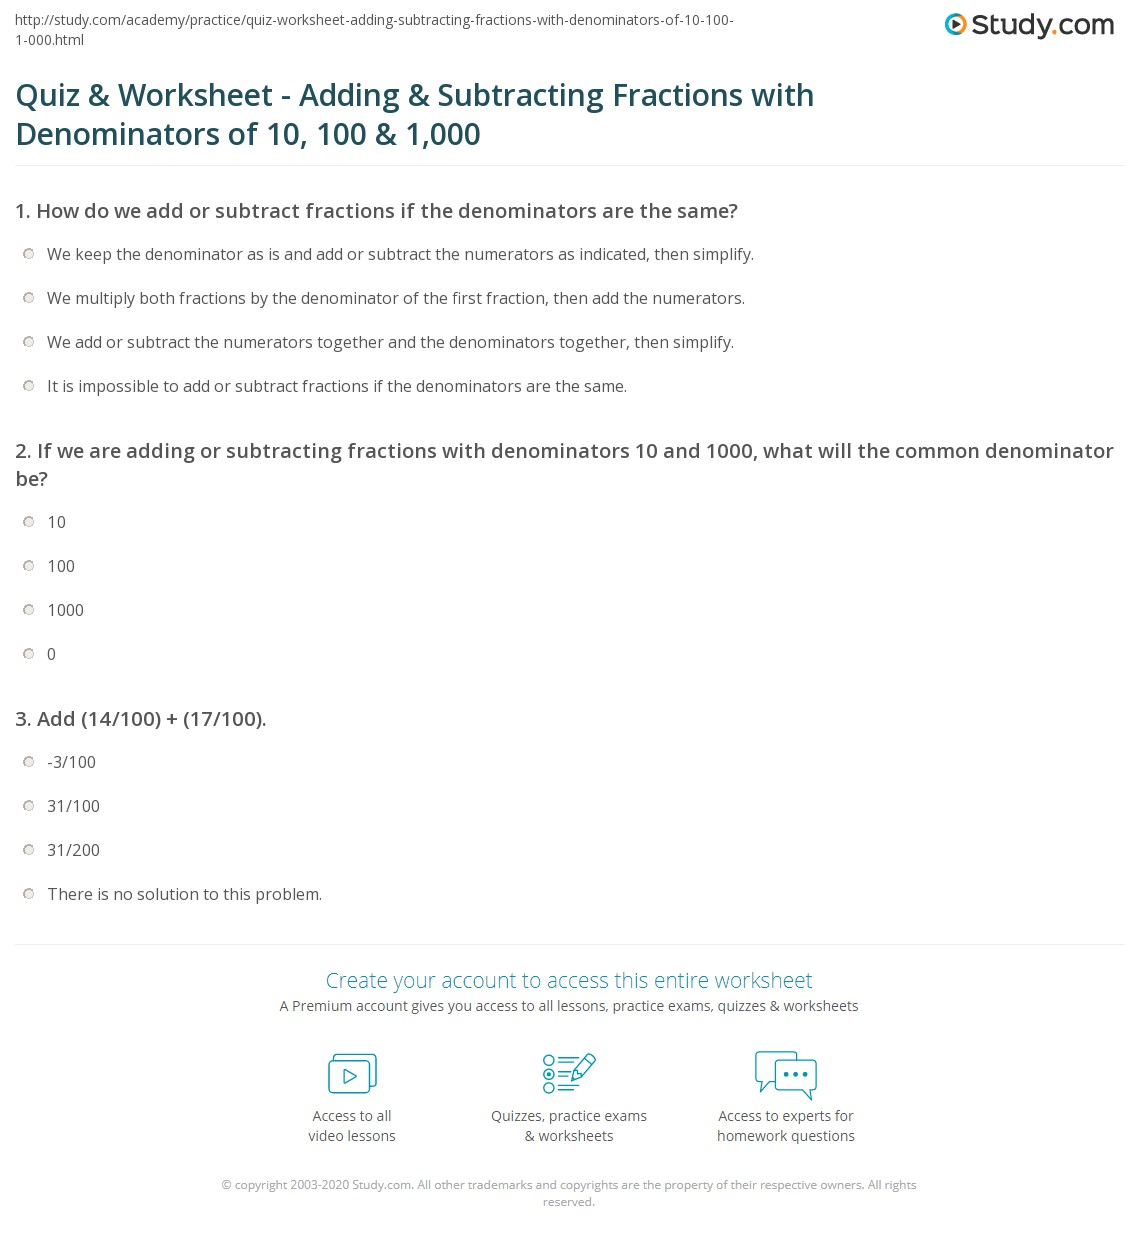 Quiz Worksheet Adding Subtracting Fractions With Denominators